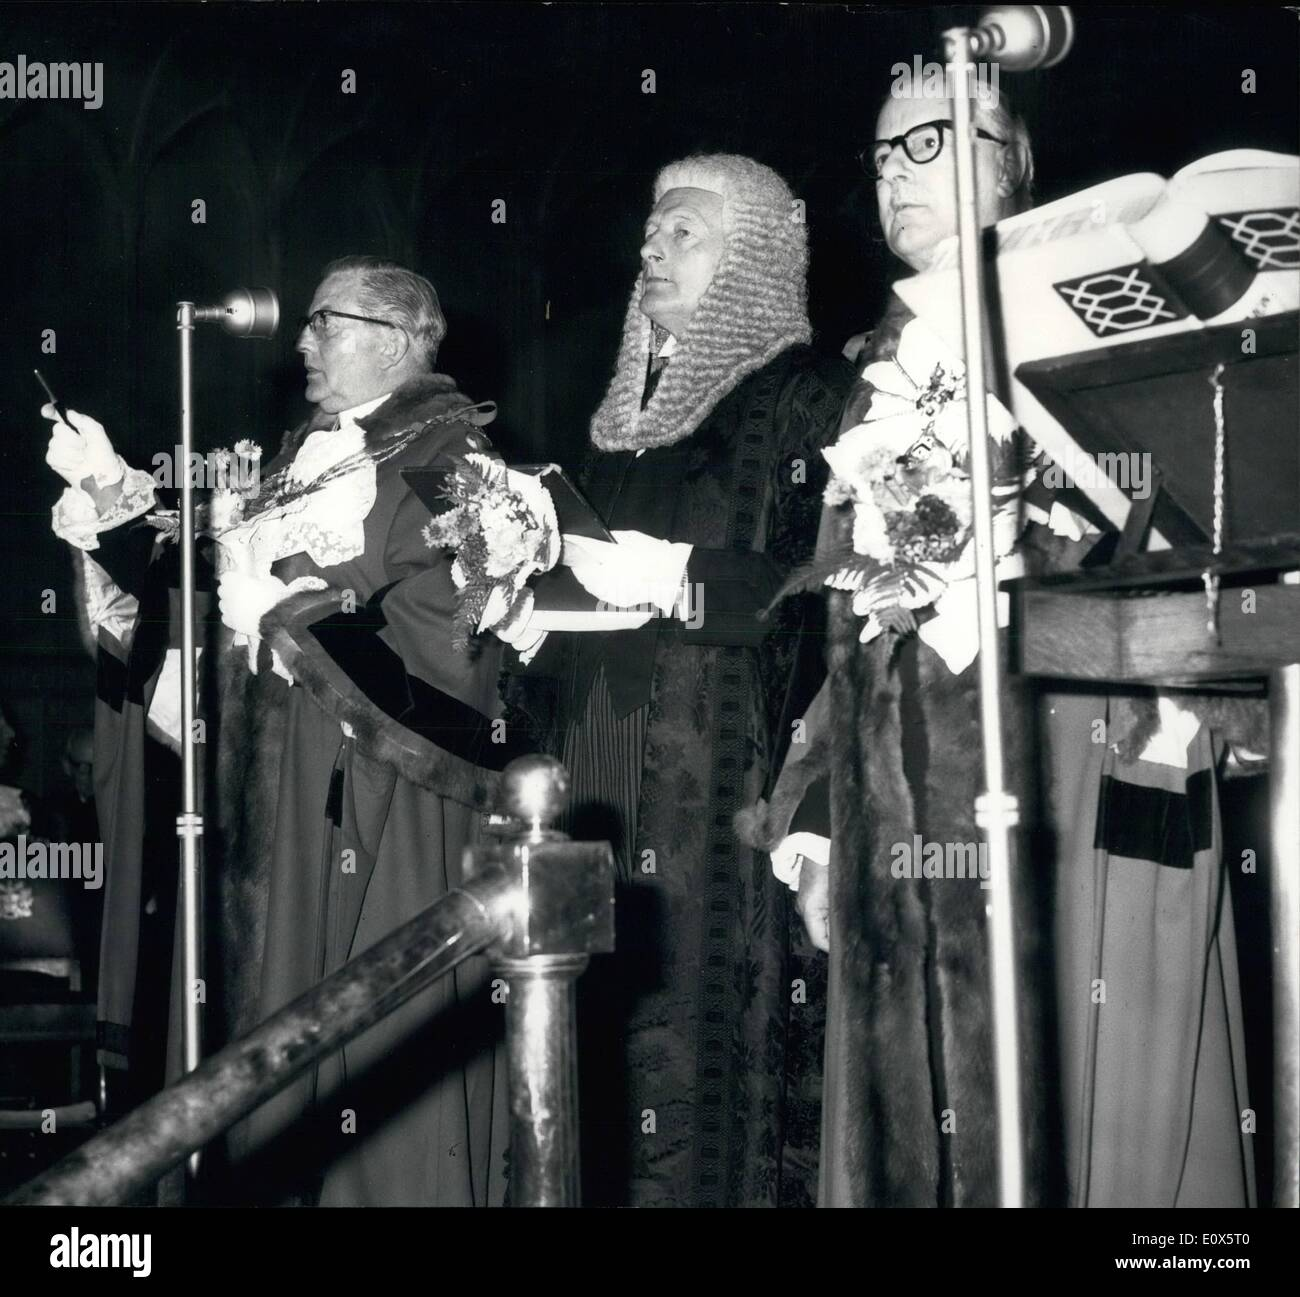 Jun. 06, 1965 - Election of Sheriffs.: The Livery men of the City of London assembled today in Common Hall to appoint among themselves two Sheriffs. Their were three candidates and a poll was demanded. Photo shows counting the vote (left to right) Alderman A. Trinder, Common Sergeant Mervyn Griffith Jones and Mrs. Arthur Ley. - Stock Image